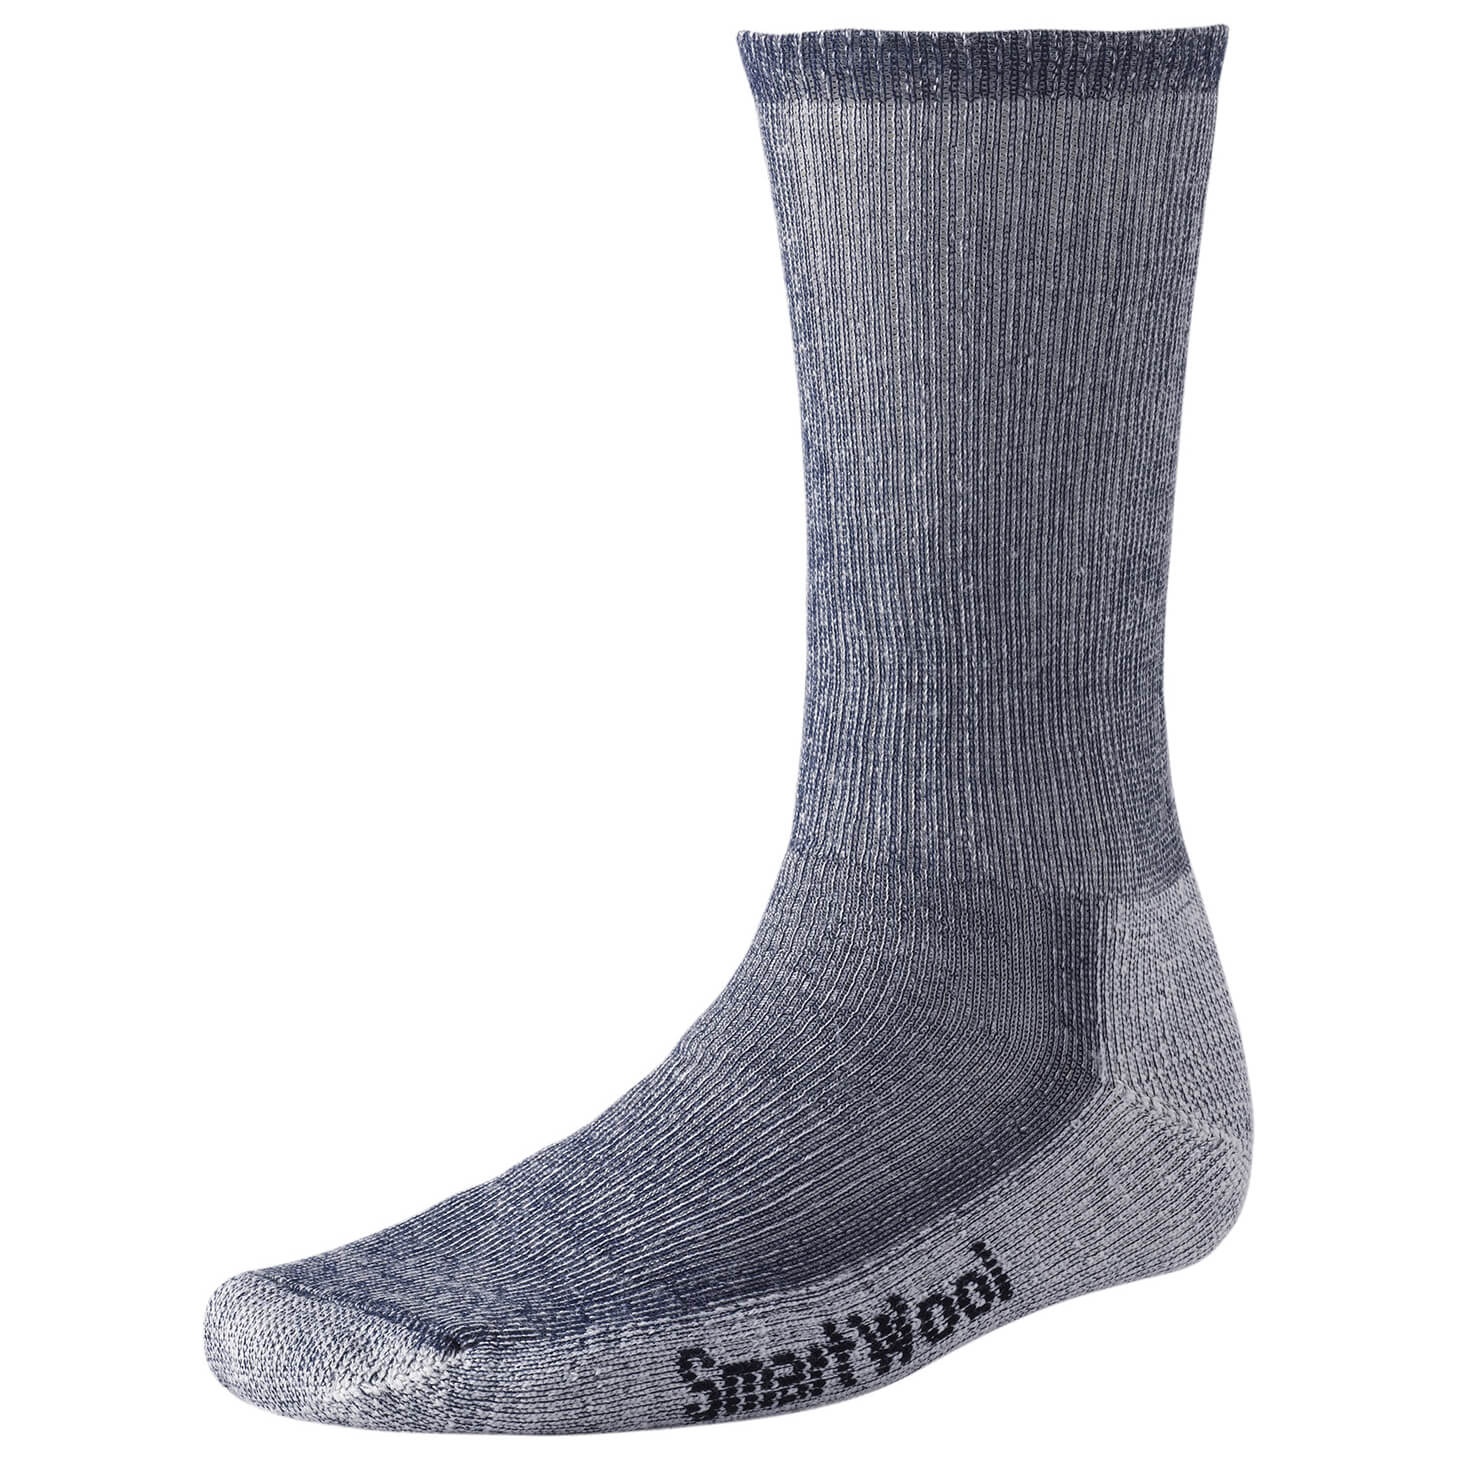 Smartwool - Hike Medium Crew - Trekkingsocken Navy